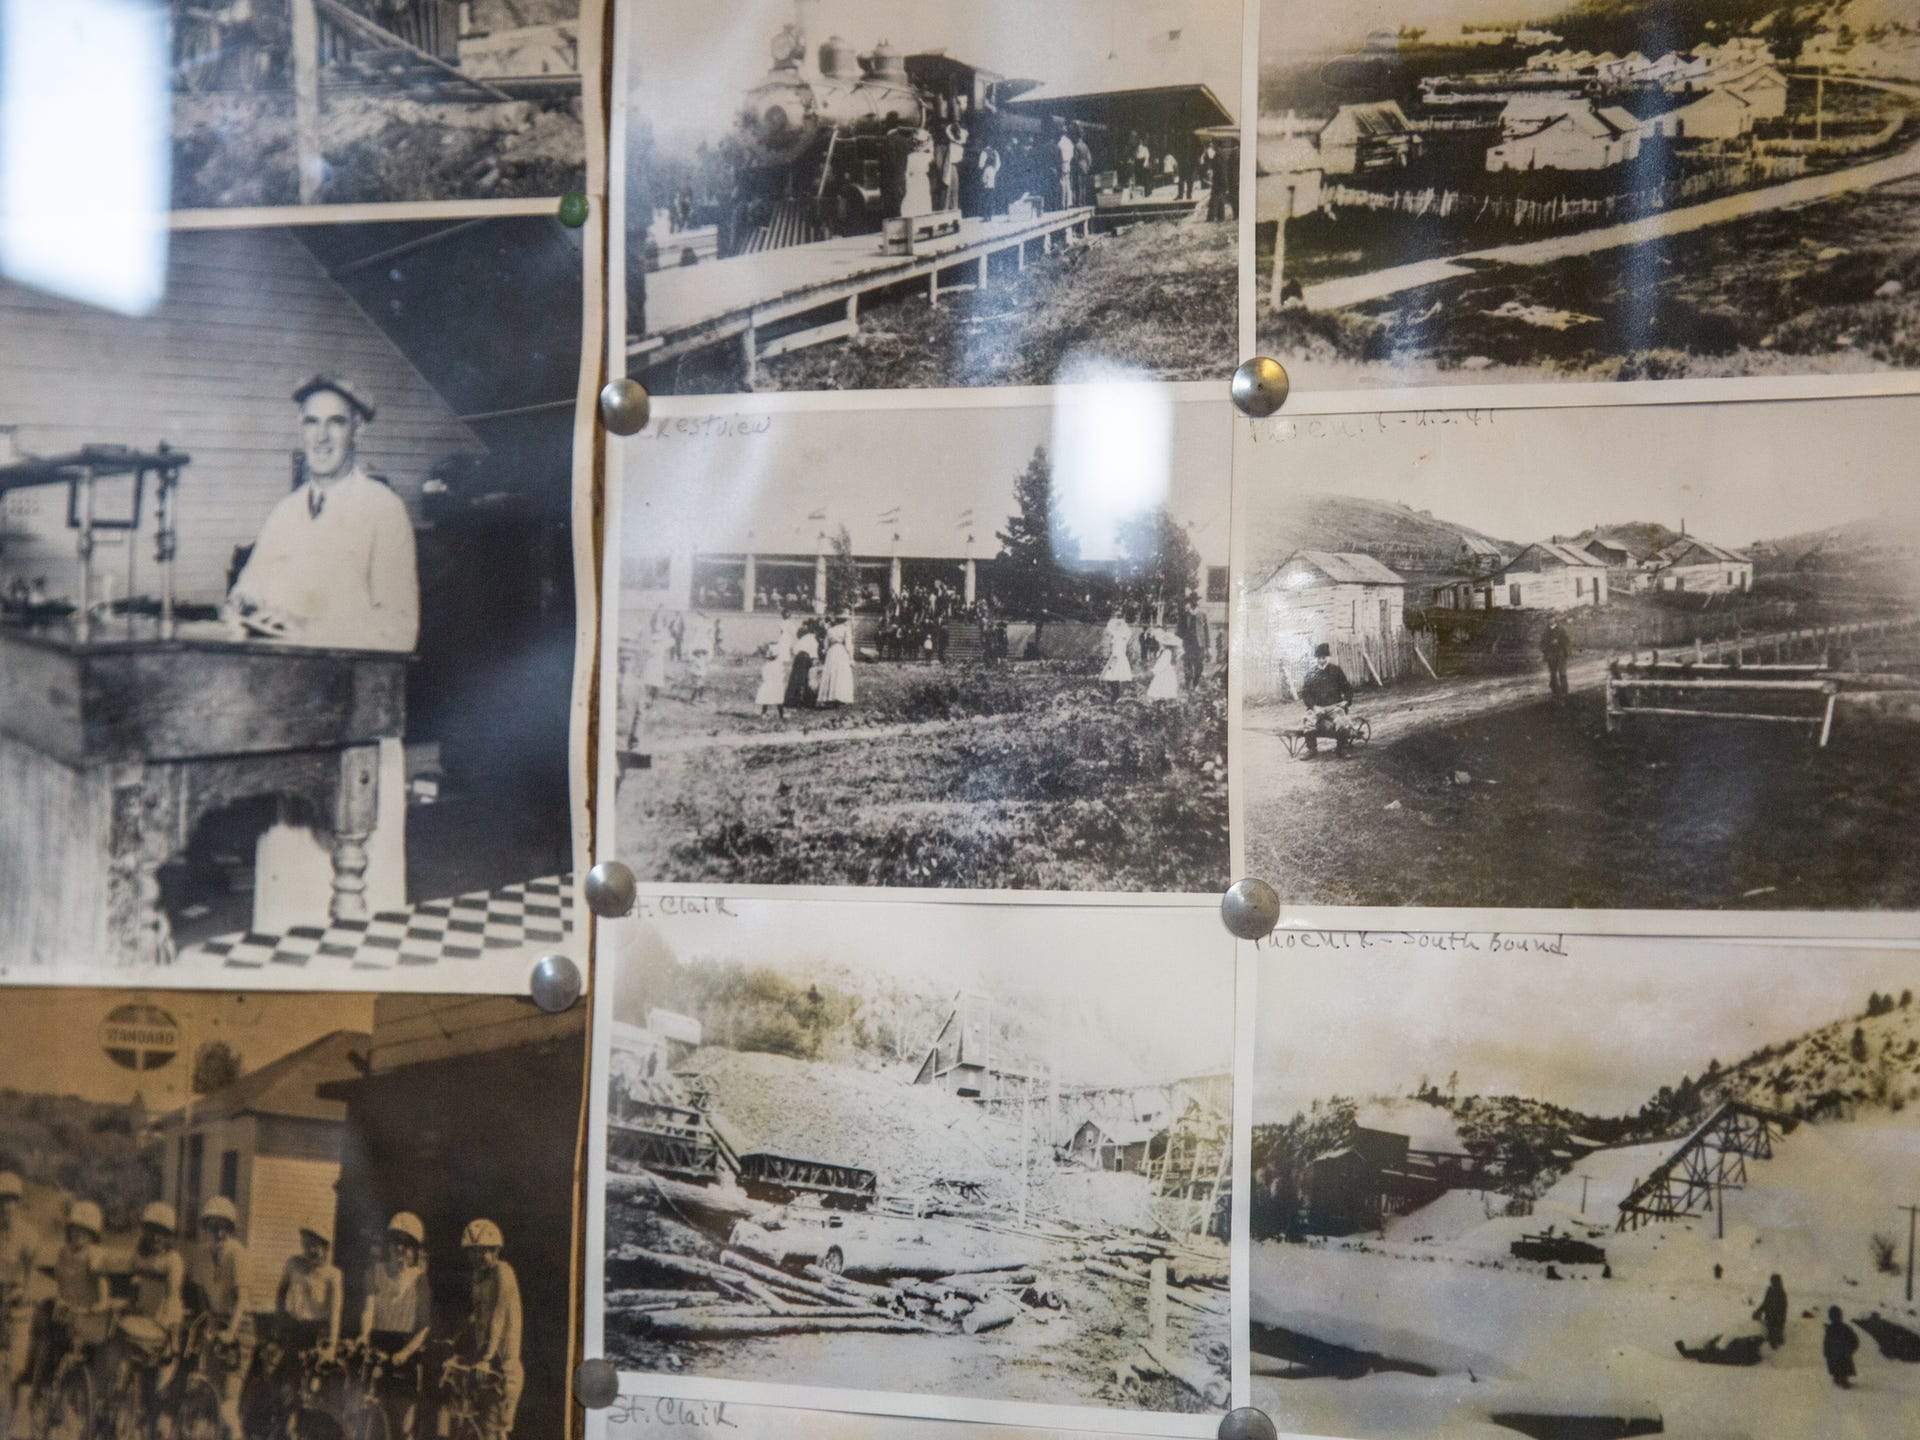 Historic photographs of the long-gone mining town of